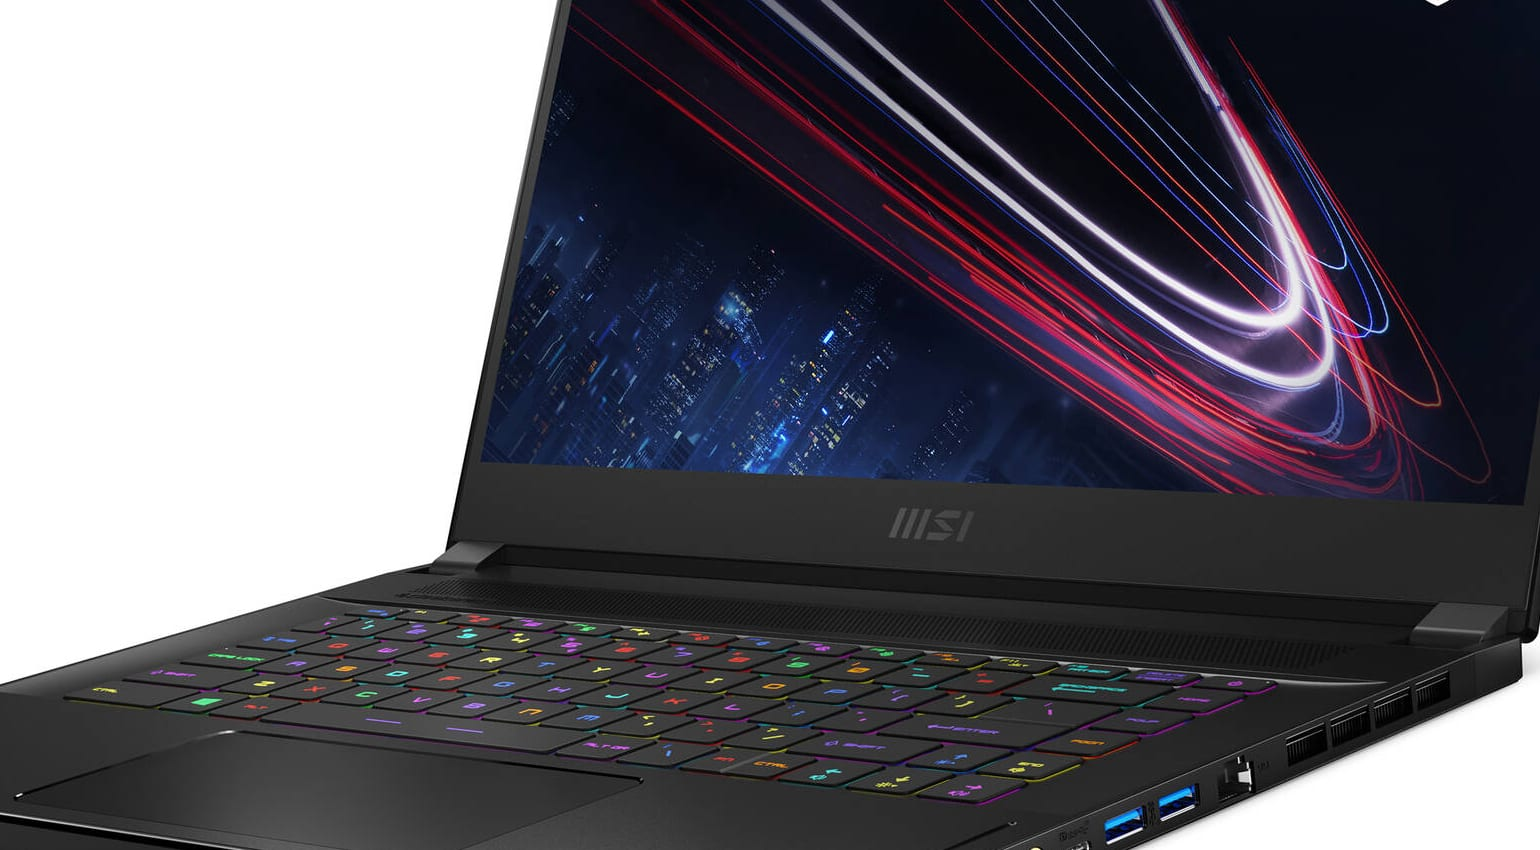 The MSi GS66 Stealth is easily one of the best Windows laptops for music production.